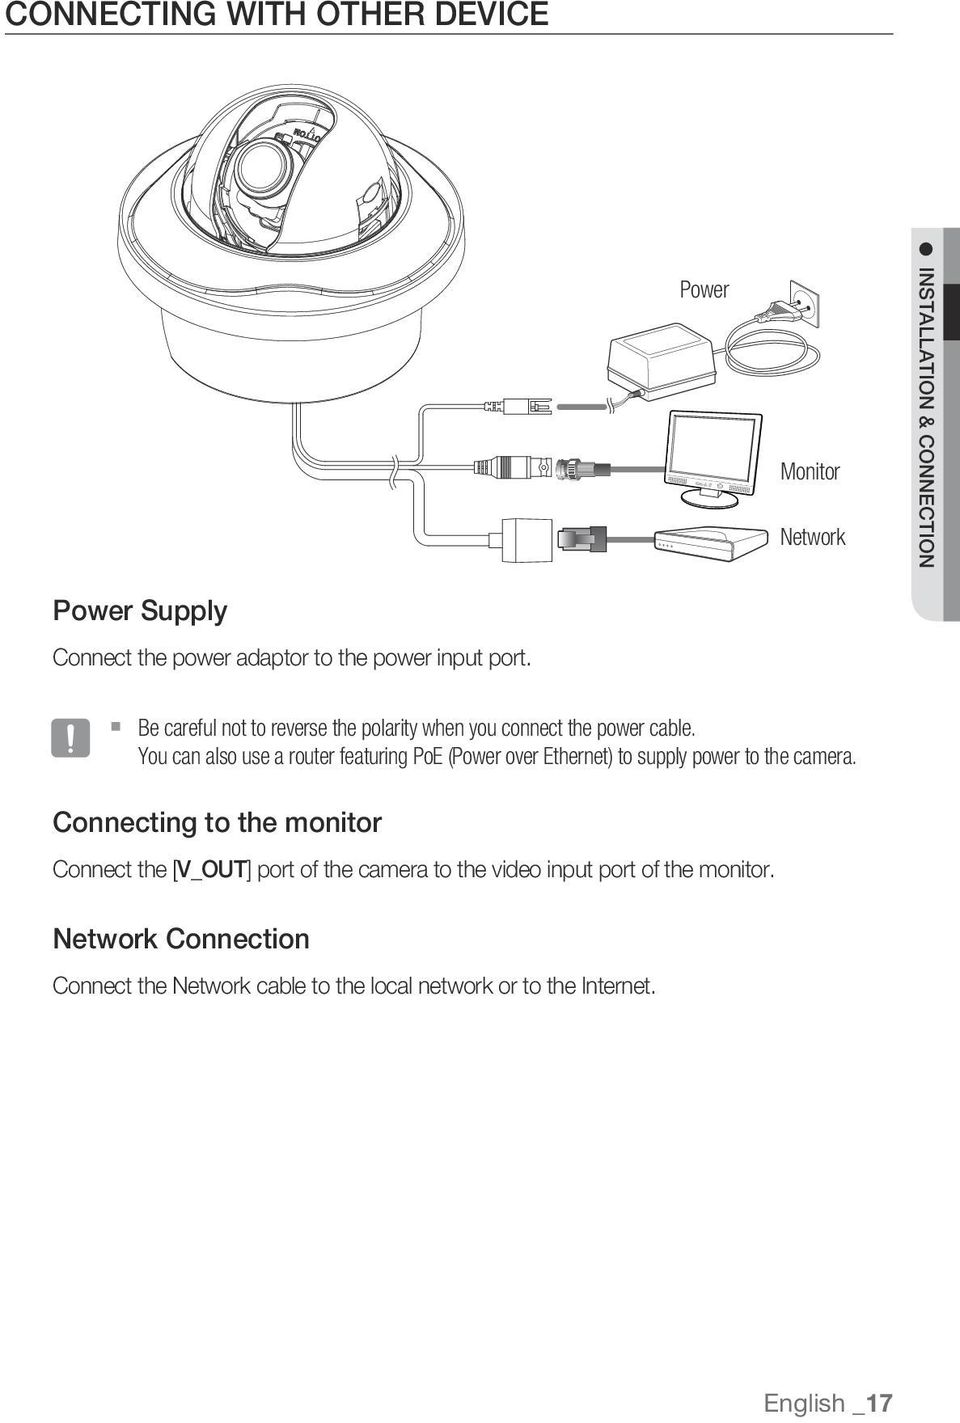 You can also use a router featuring PoE (Power over Ethernet) to supply power to the camera.